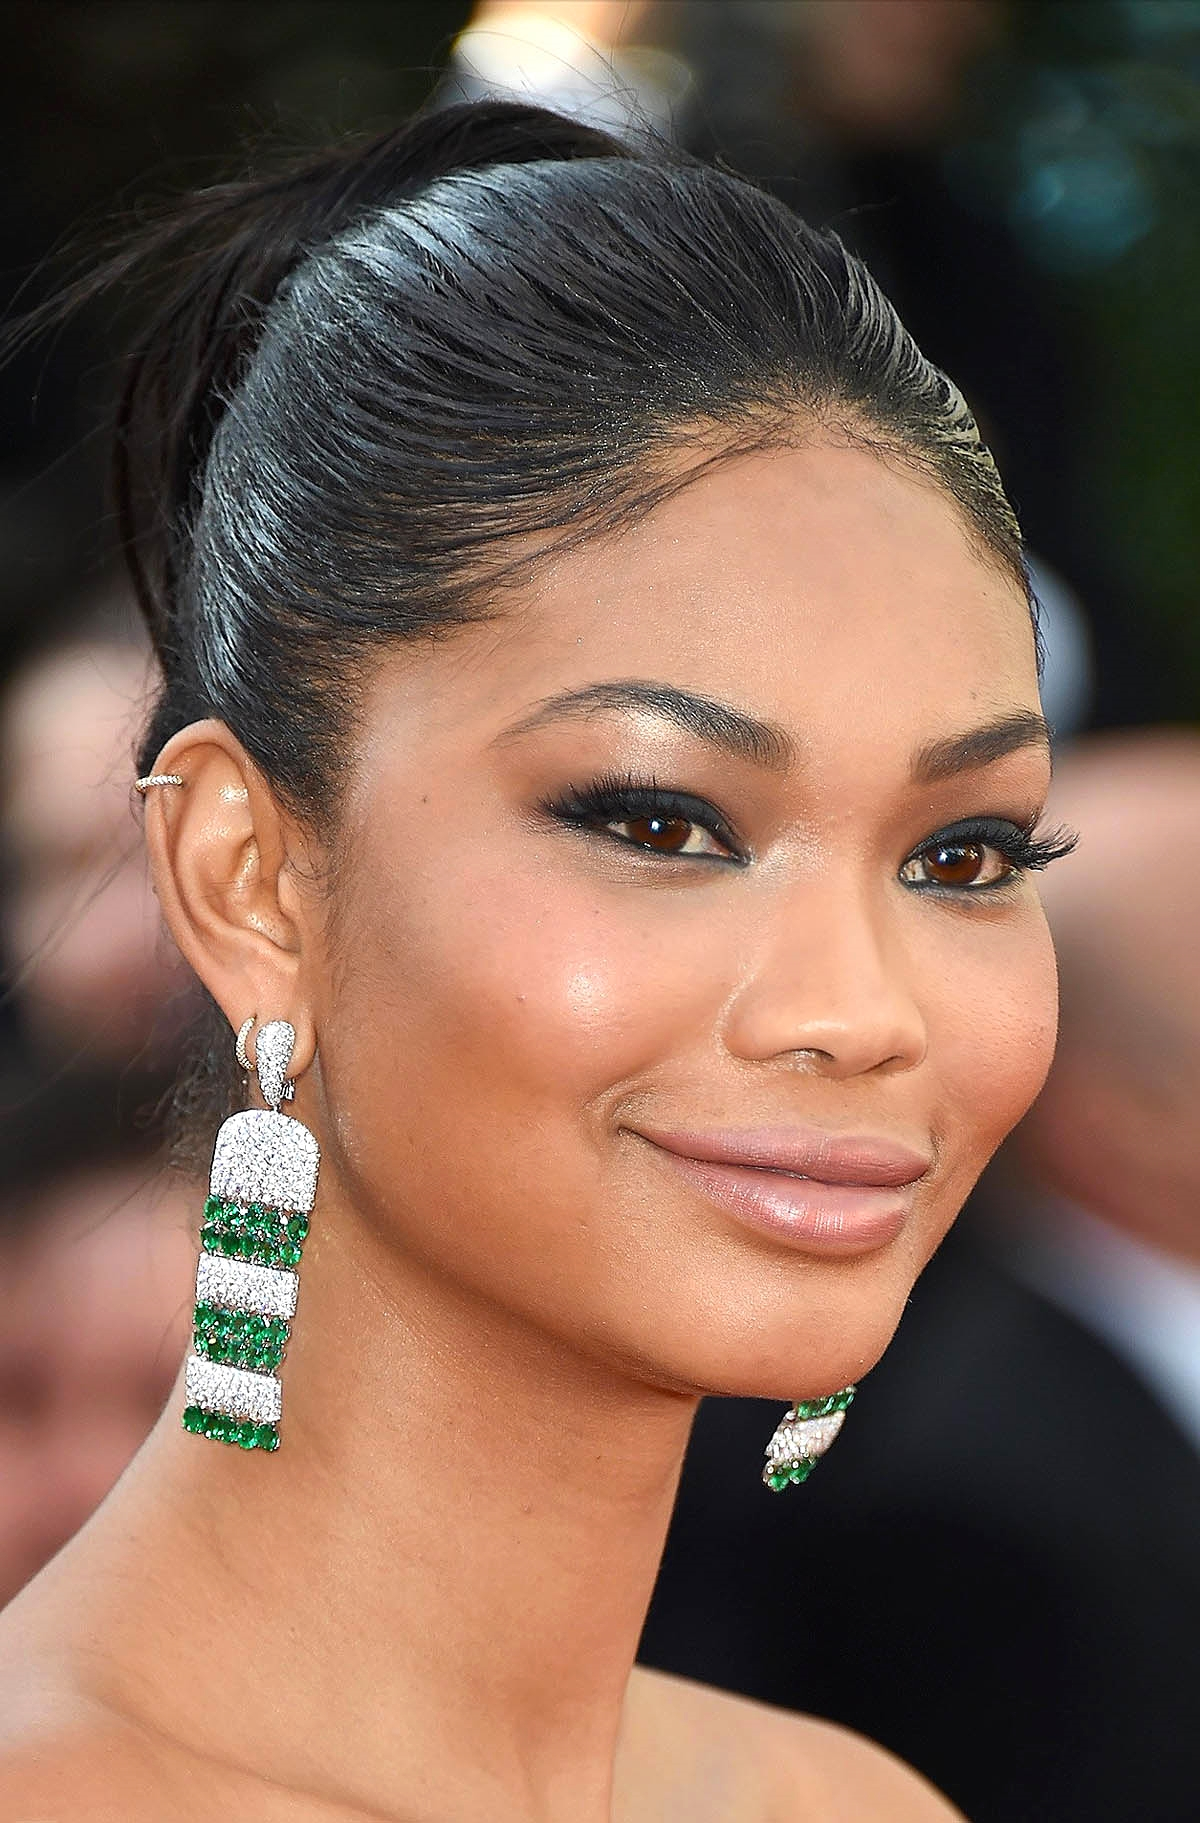 Chanel Iman at the 'Youth' premiere        Photo by Getty